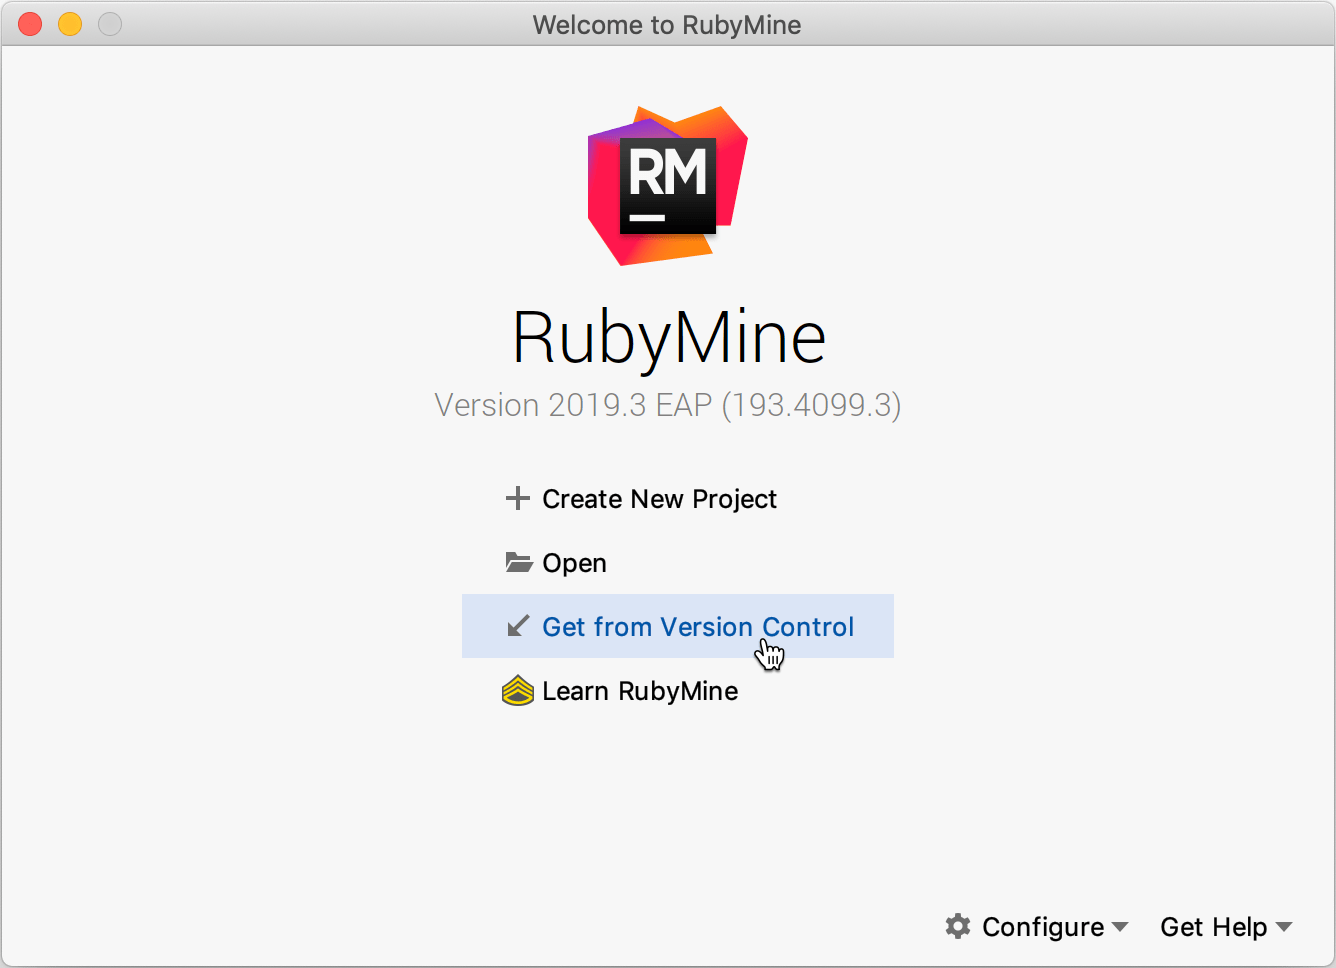 Welcome Screen / Get from Version Control